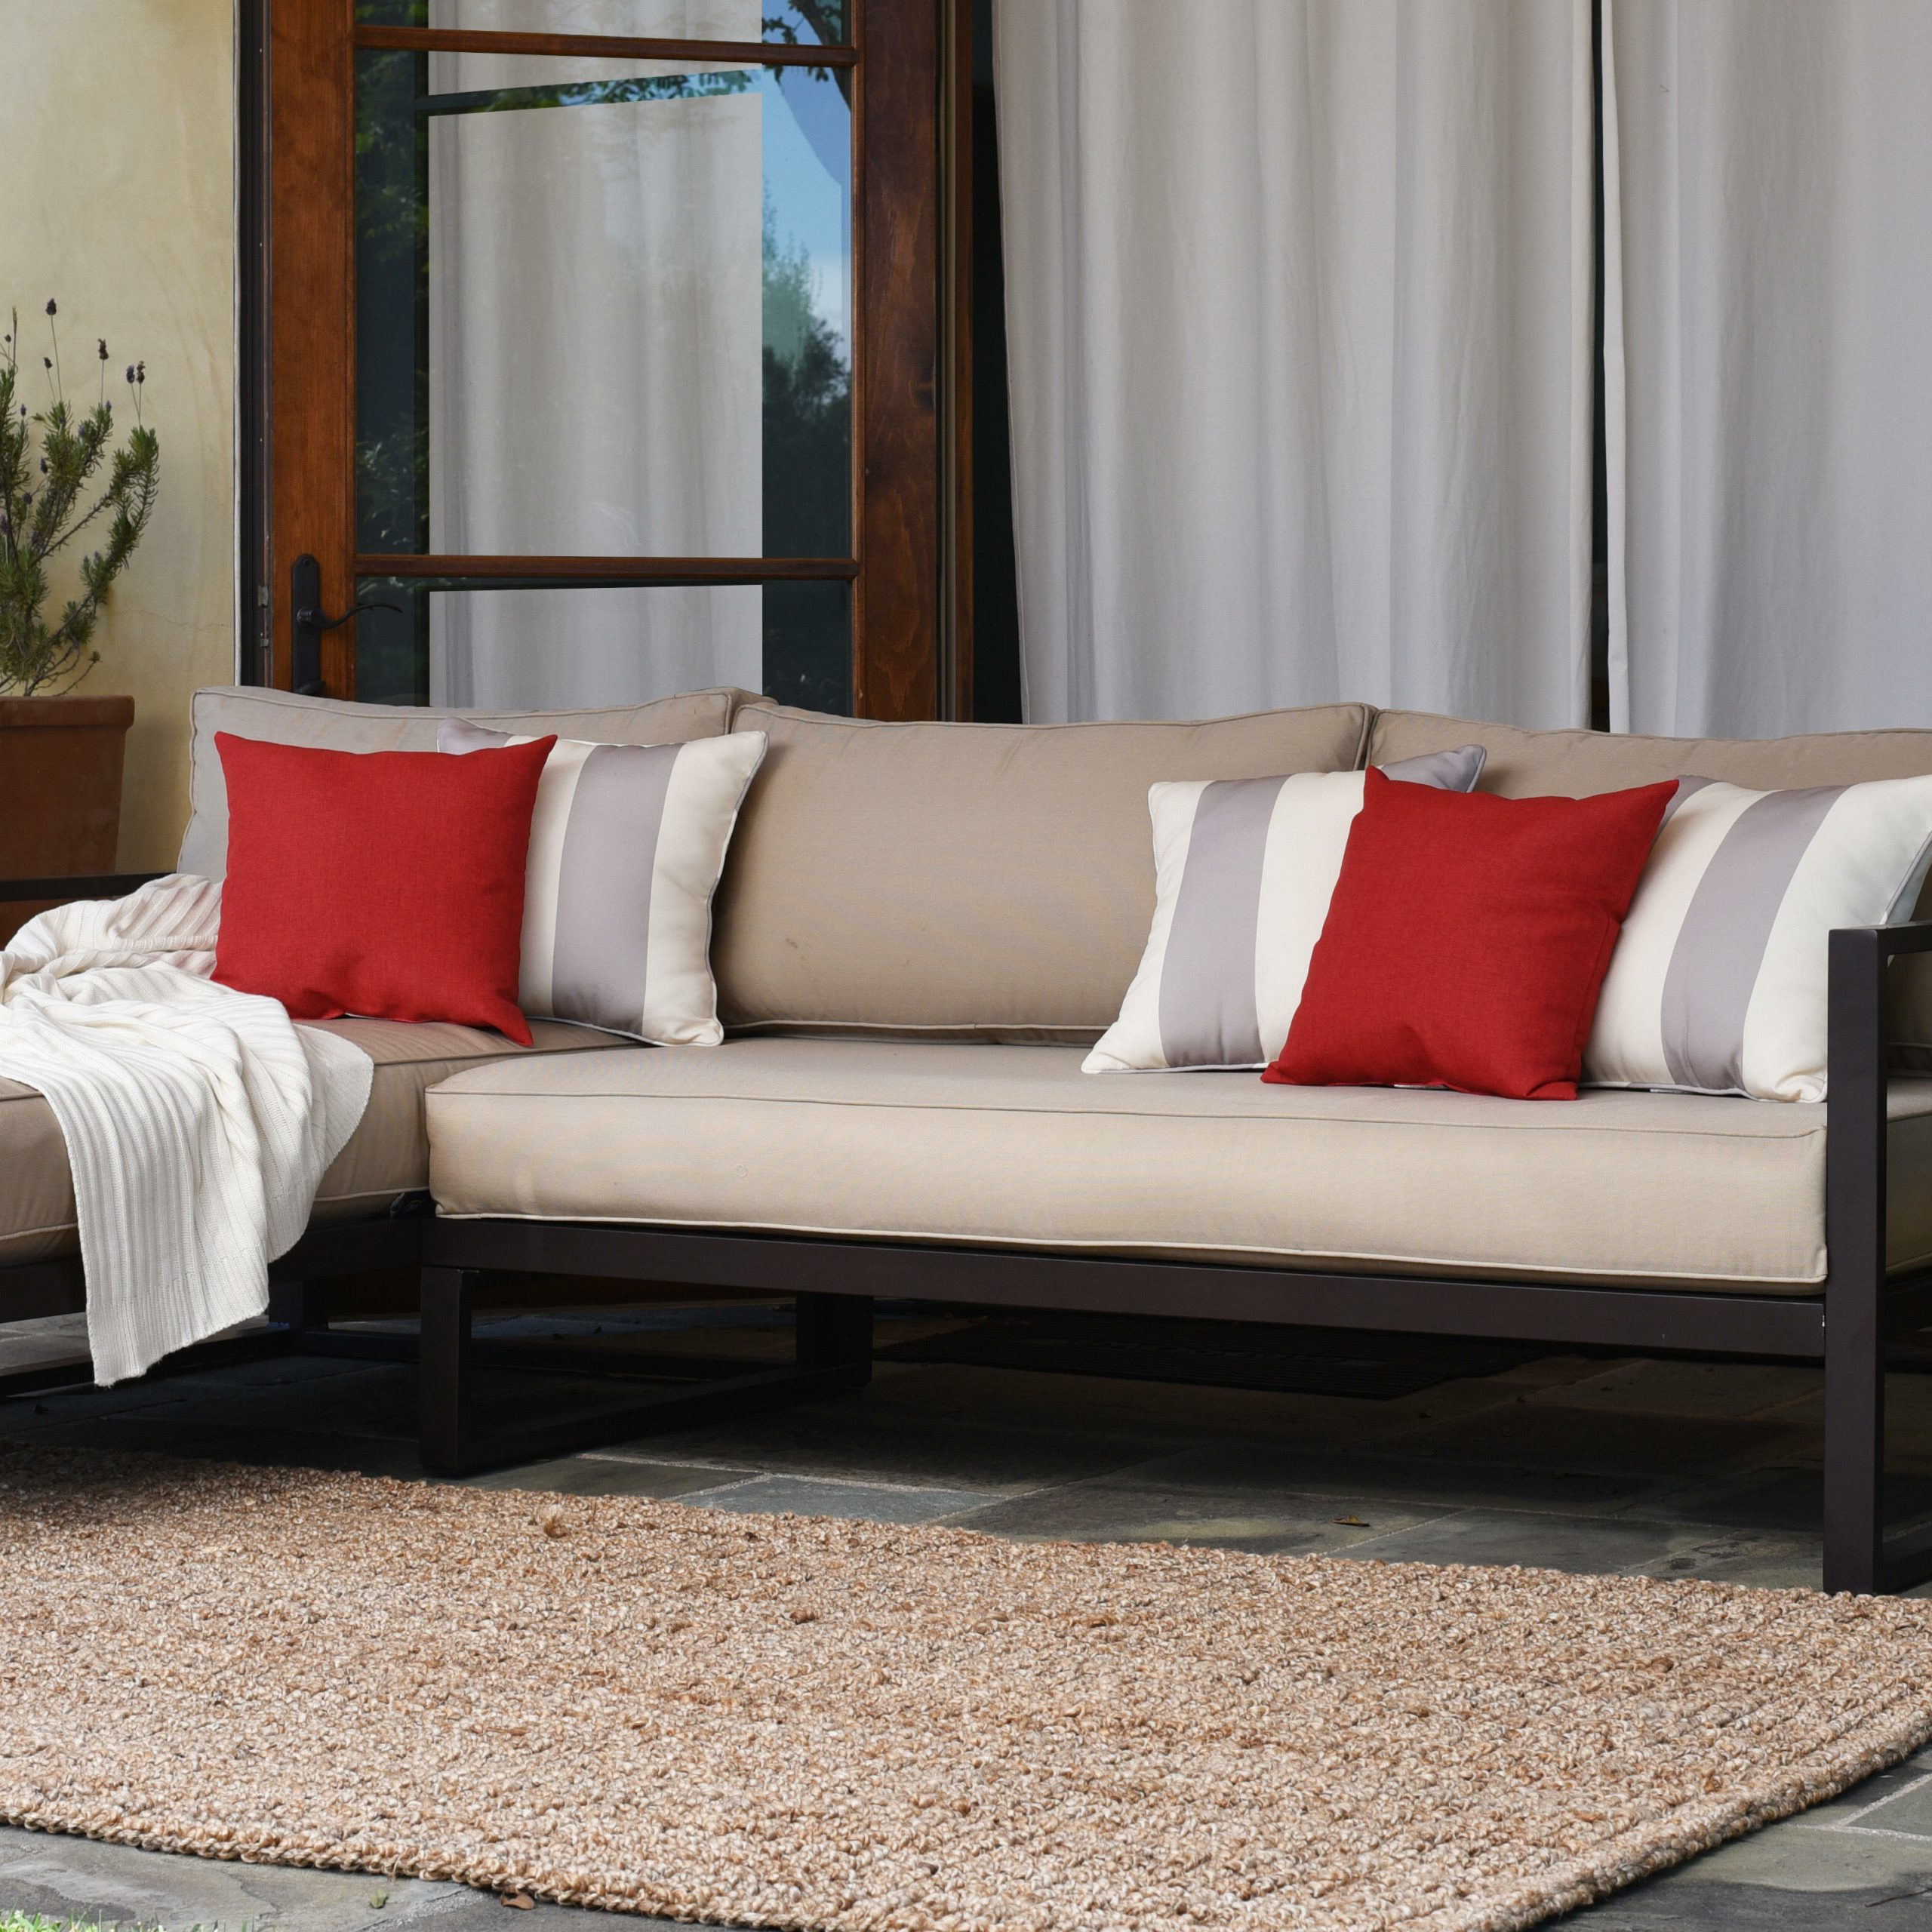 Catalina Outdoor Right Arm Sectional Piece With Cushions With Regard To Current Vallauris Storage Patio Sectionals With Cushions (View 24 of 25)